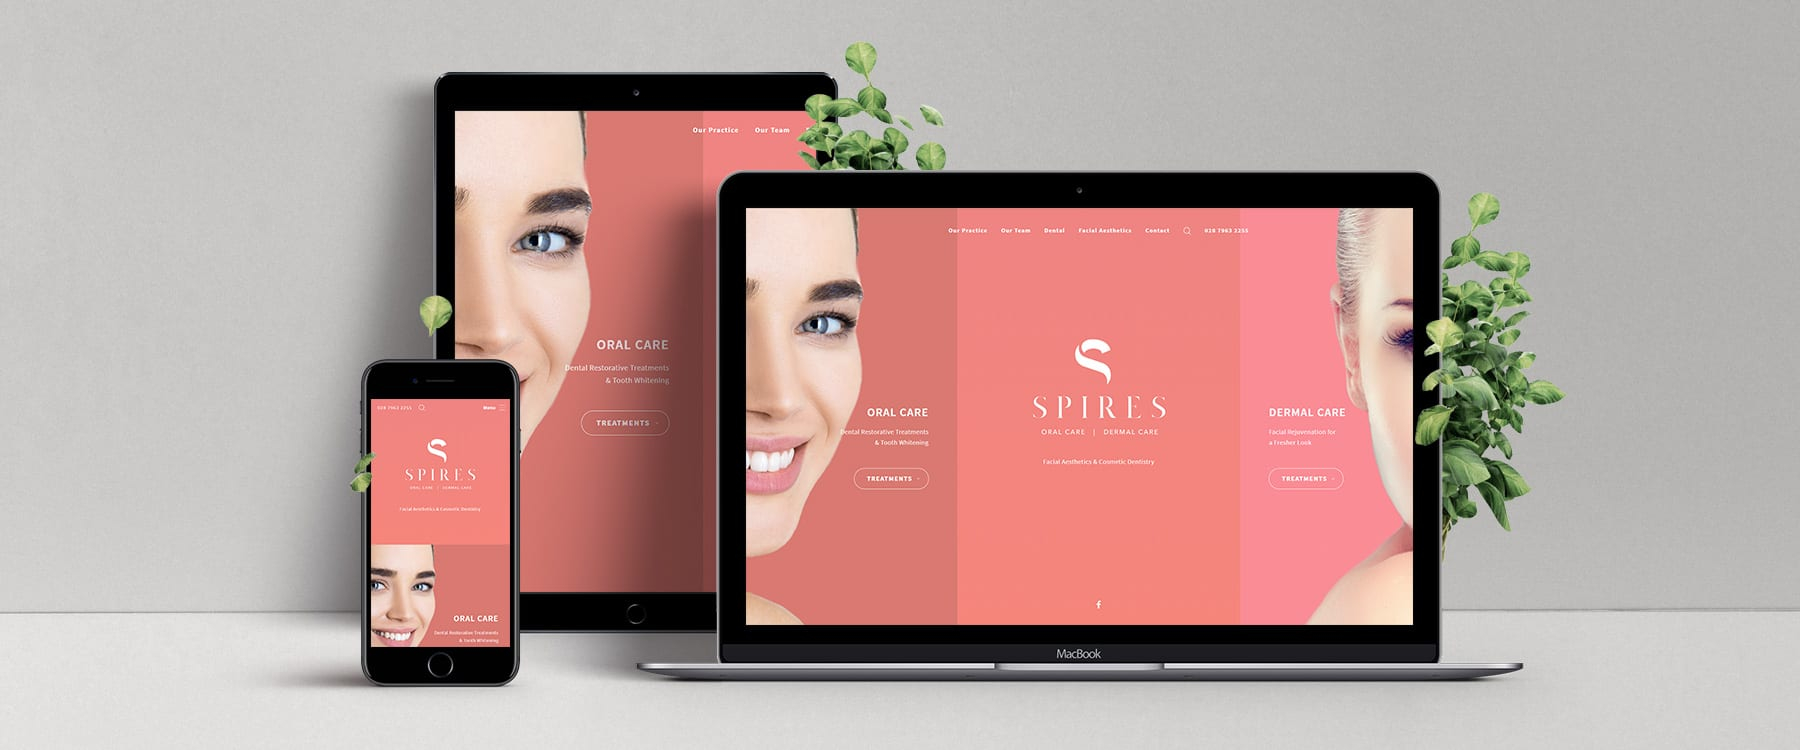 Spires Oral / Dermal Care Launch Visually Stunning New Website Image